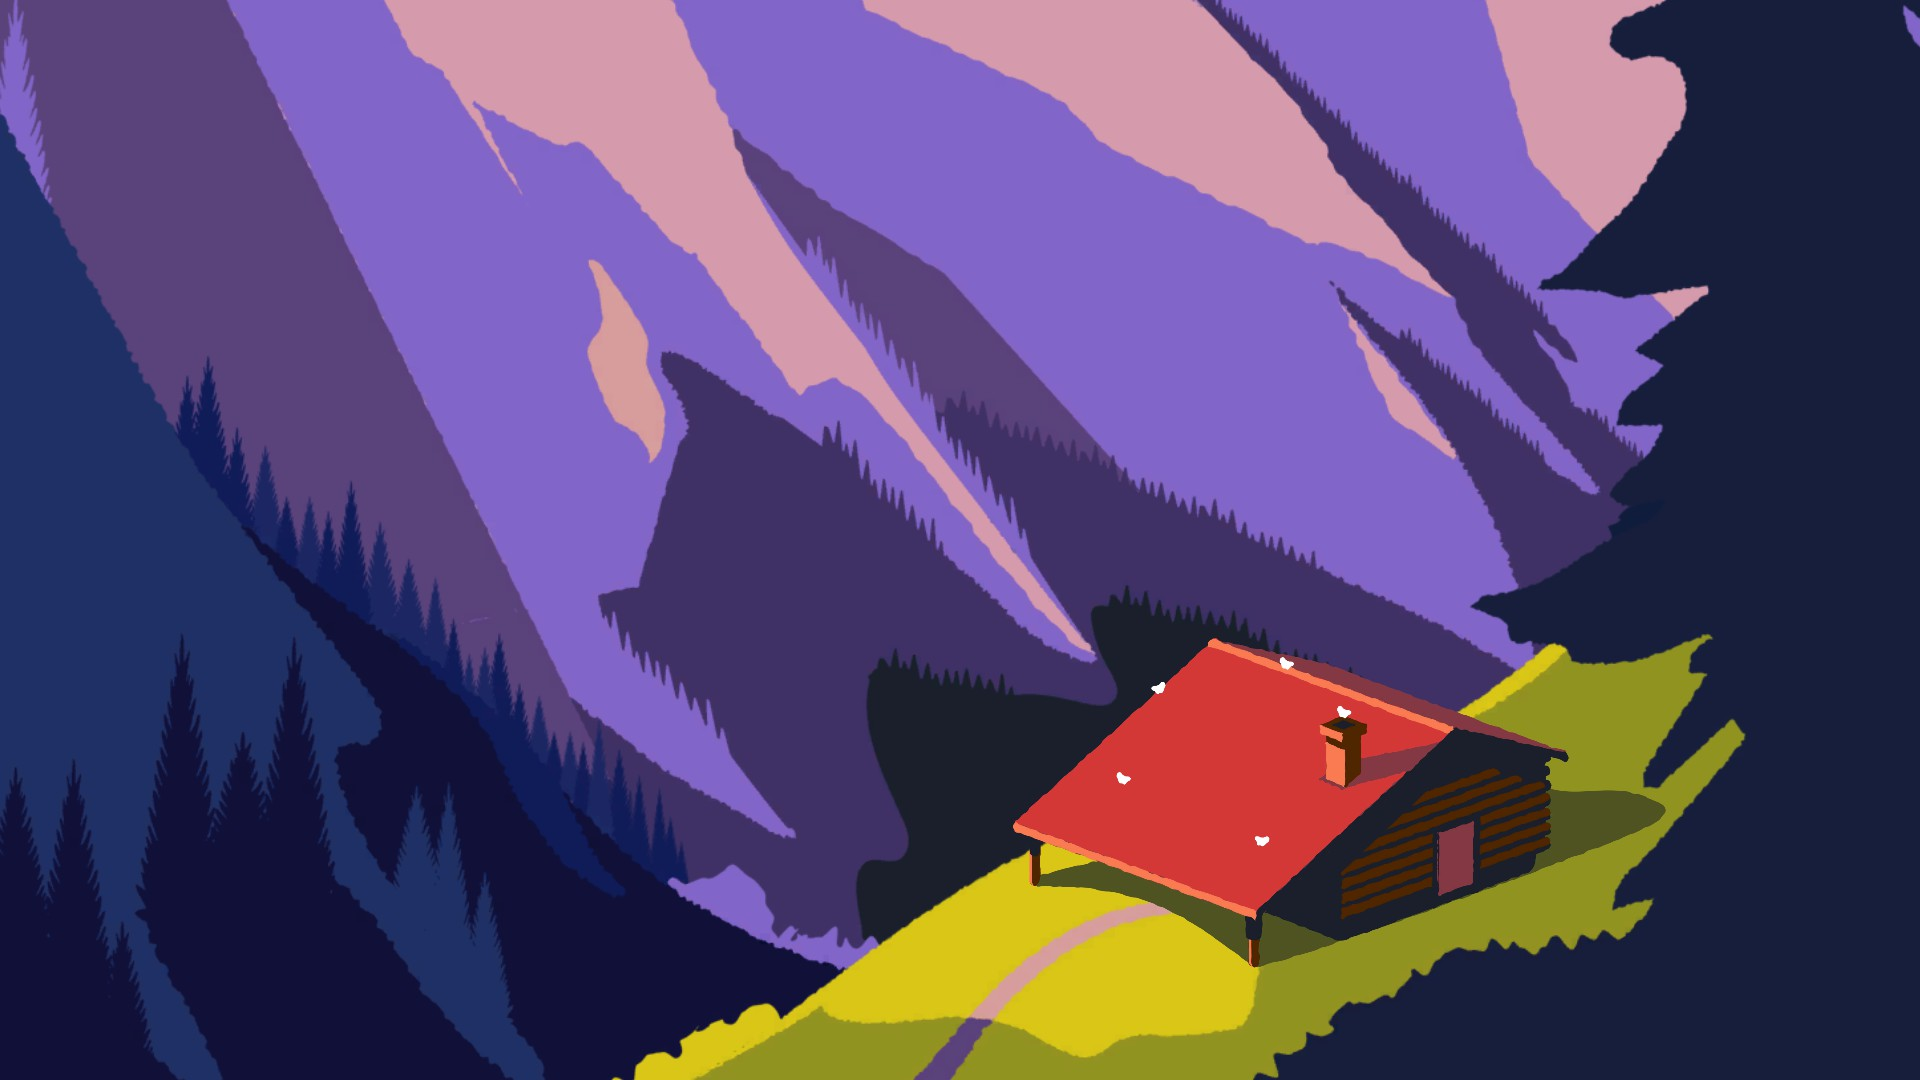 Over The Alps Review